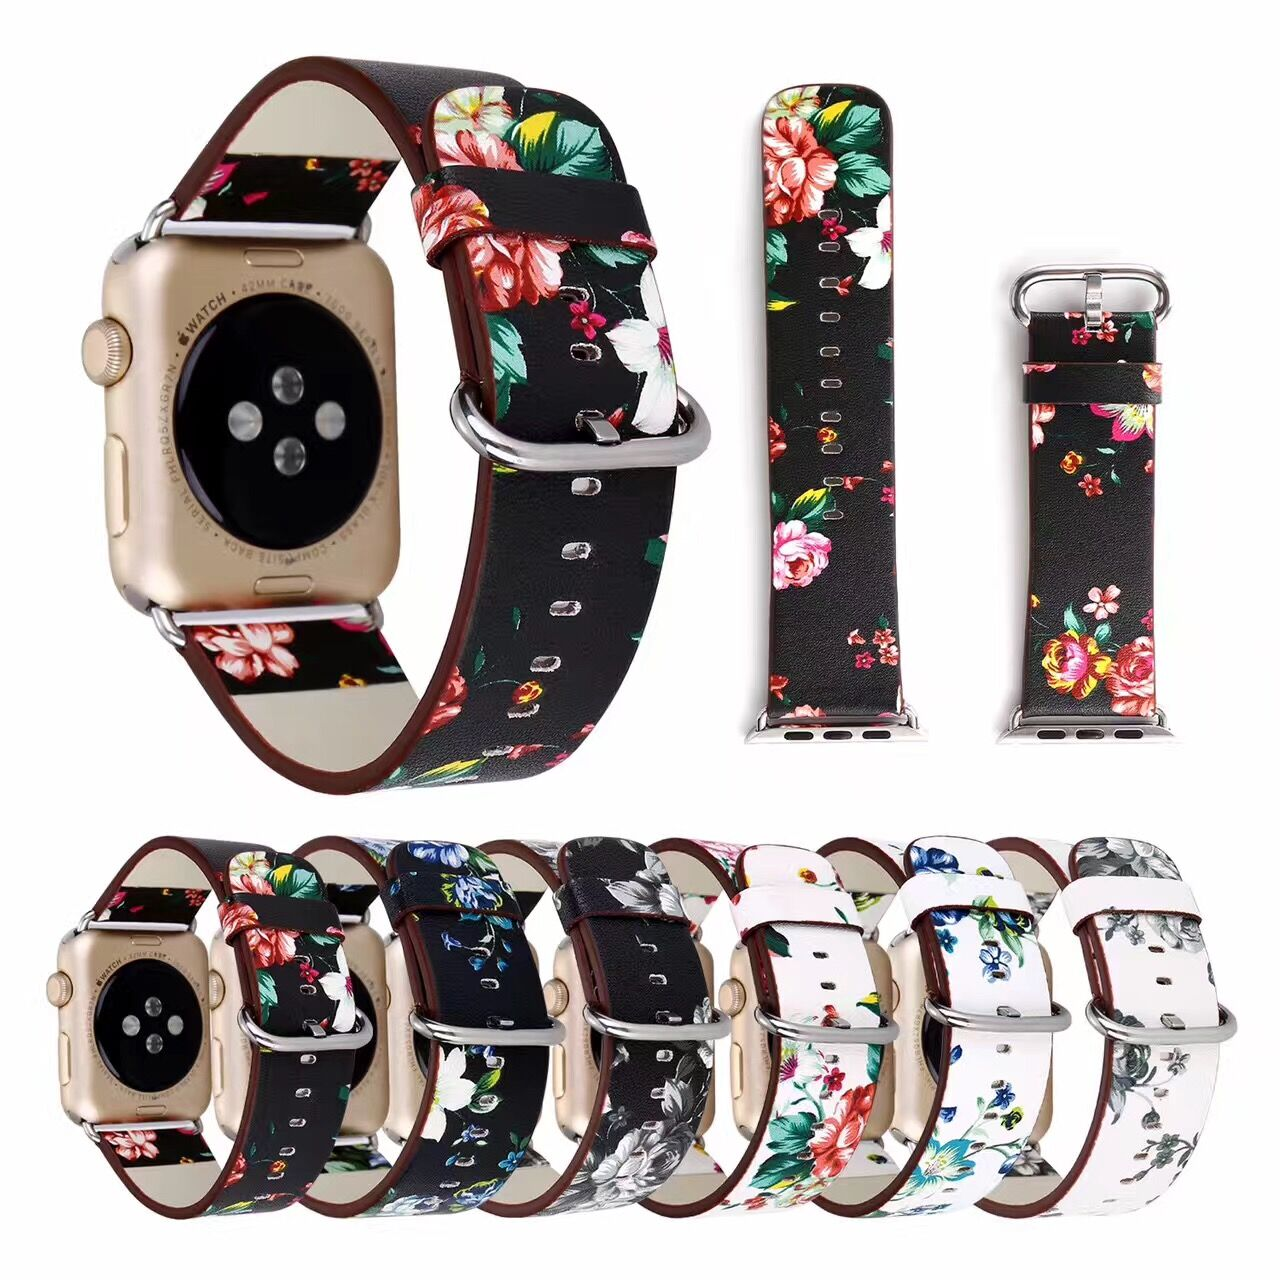 Floral Printed Leather Watch Band Strap for Apple Watch 42/38mm 40mm 44mm Flower Wristband Bracelet for iwatch series 4/3/2/1 ashei fashion flower design strap for apple watch 3 band leather series 2 1 floral printed bracelet 38mm for iwatch bands 42mm